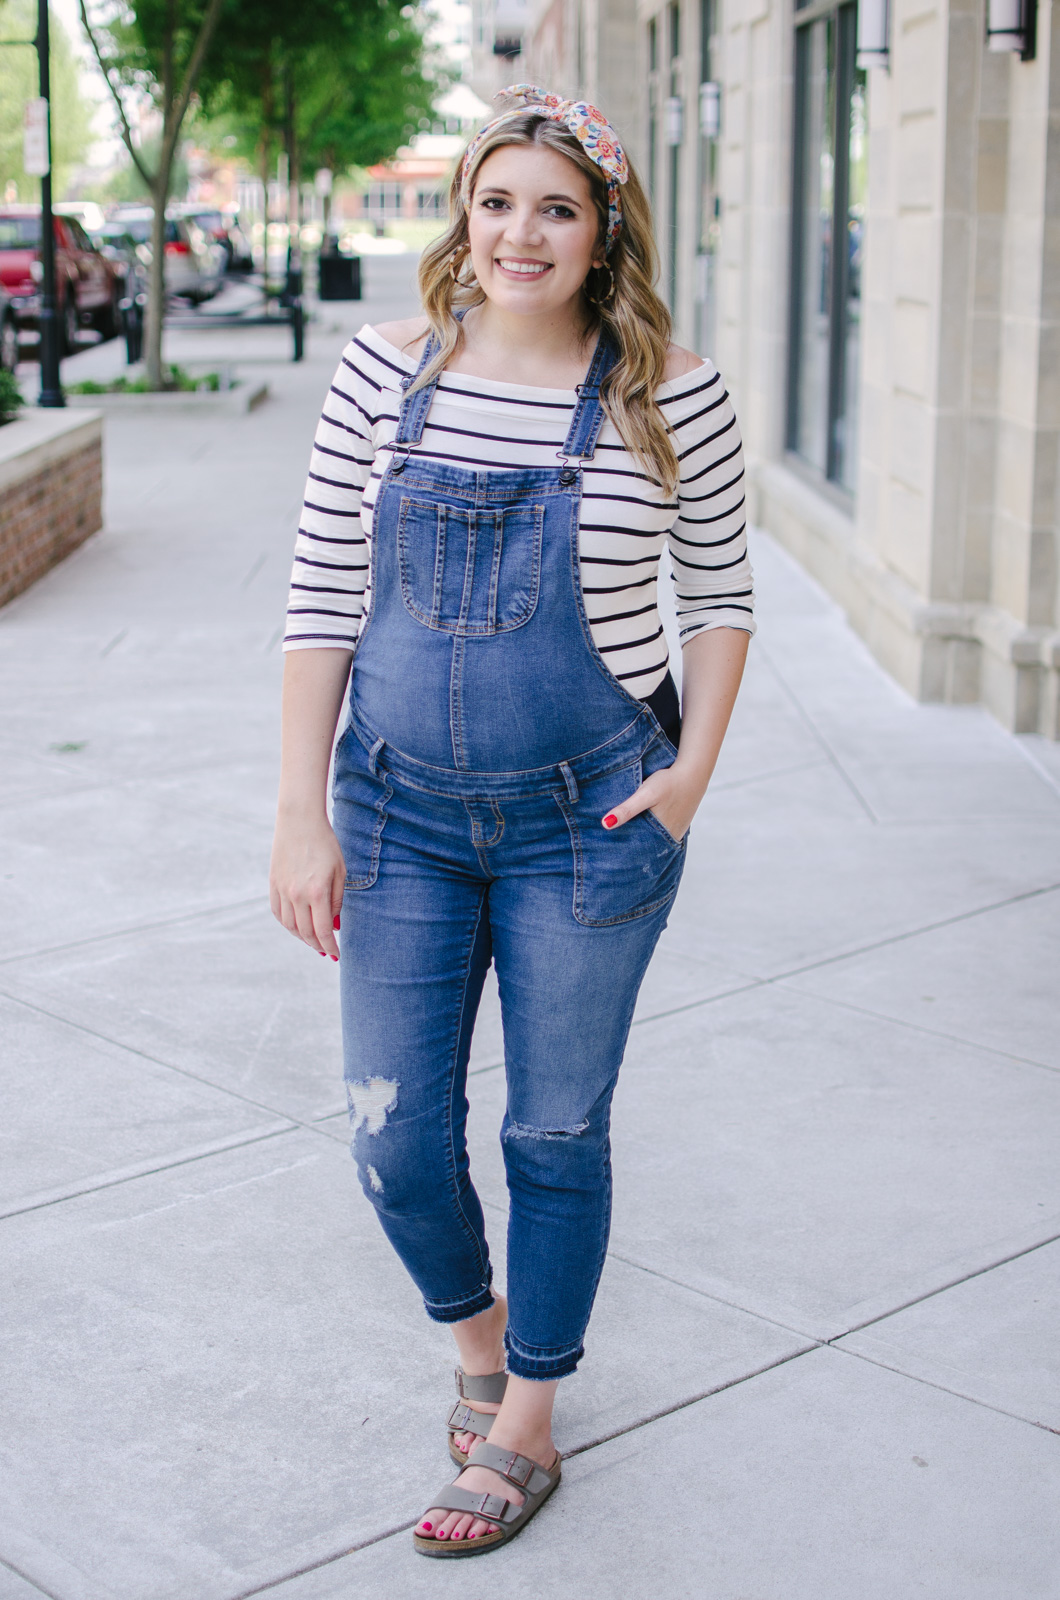 maternity overalls outfit - pregnancy overalls outfit idea | bylaurenm.com